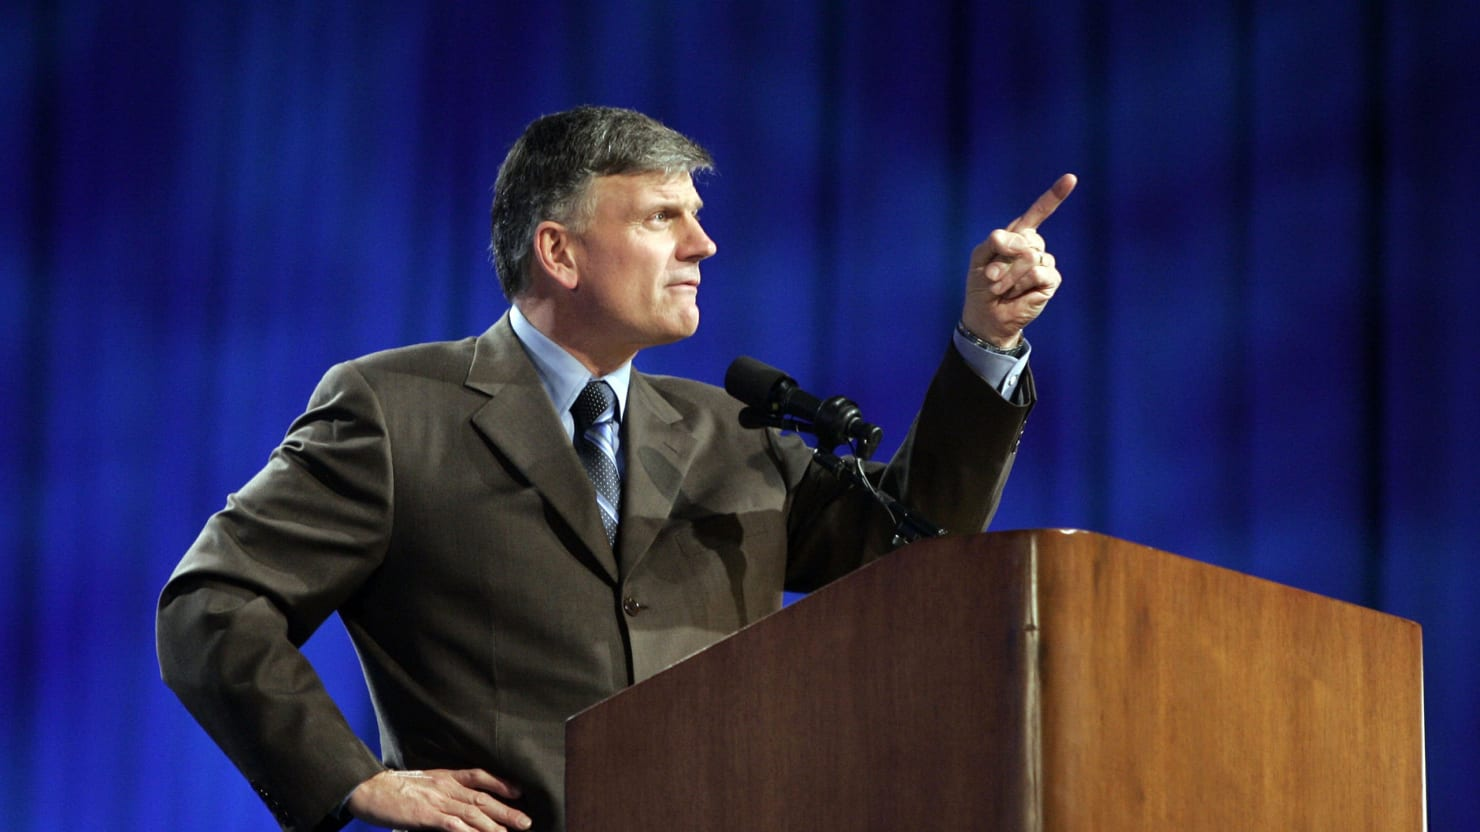 Franklin graham homosexuality in christianity